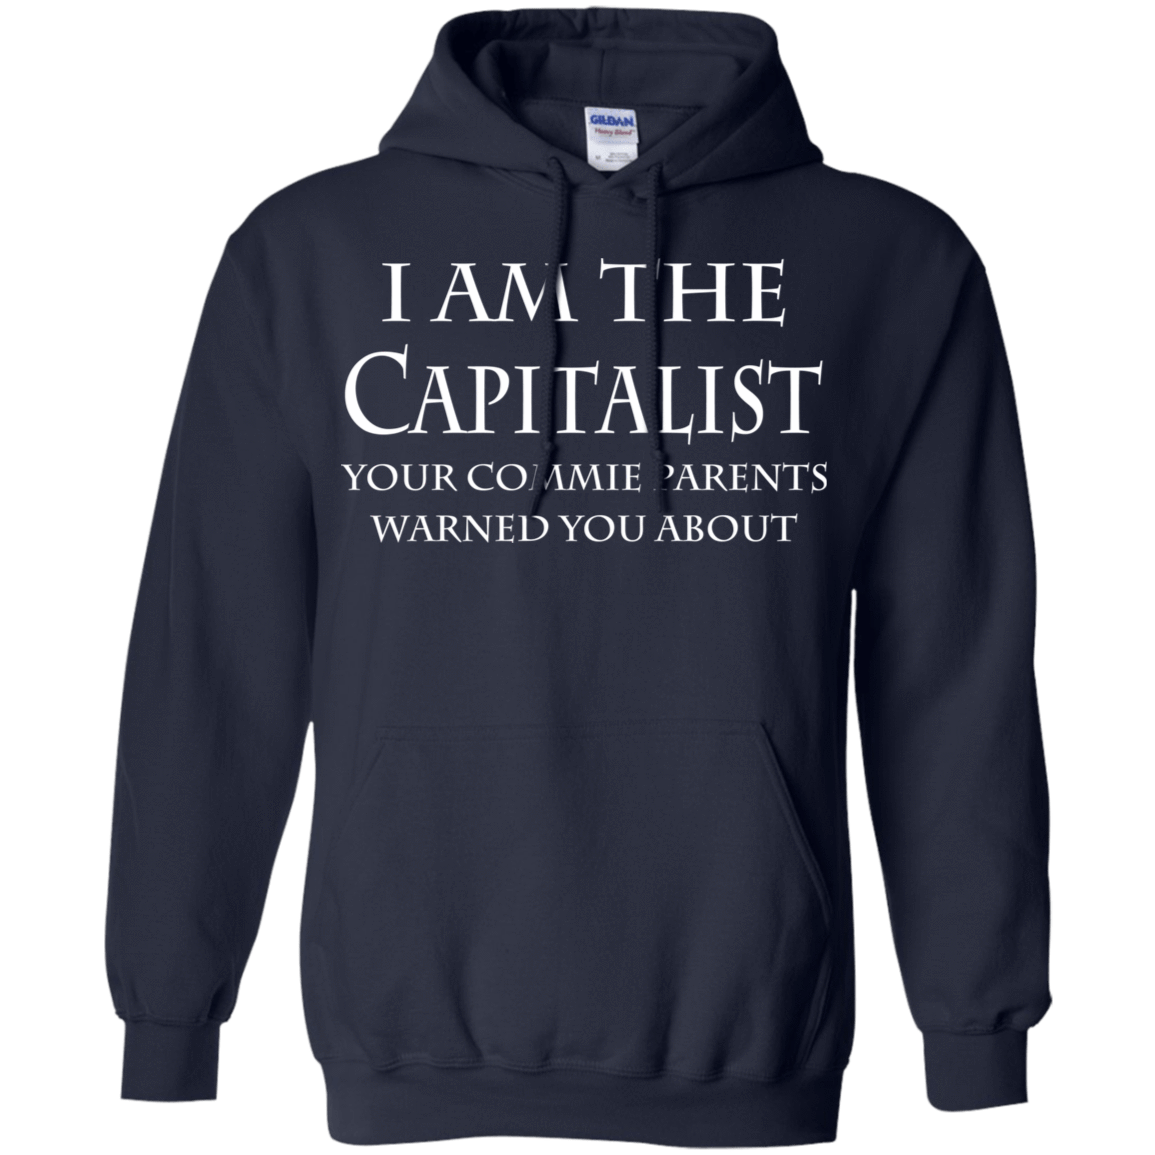 I Am The Capitalist Your Commie Parents Warned You About 541-4742-74170720-23135 - Tee Ript